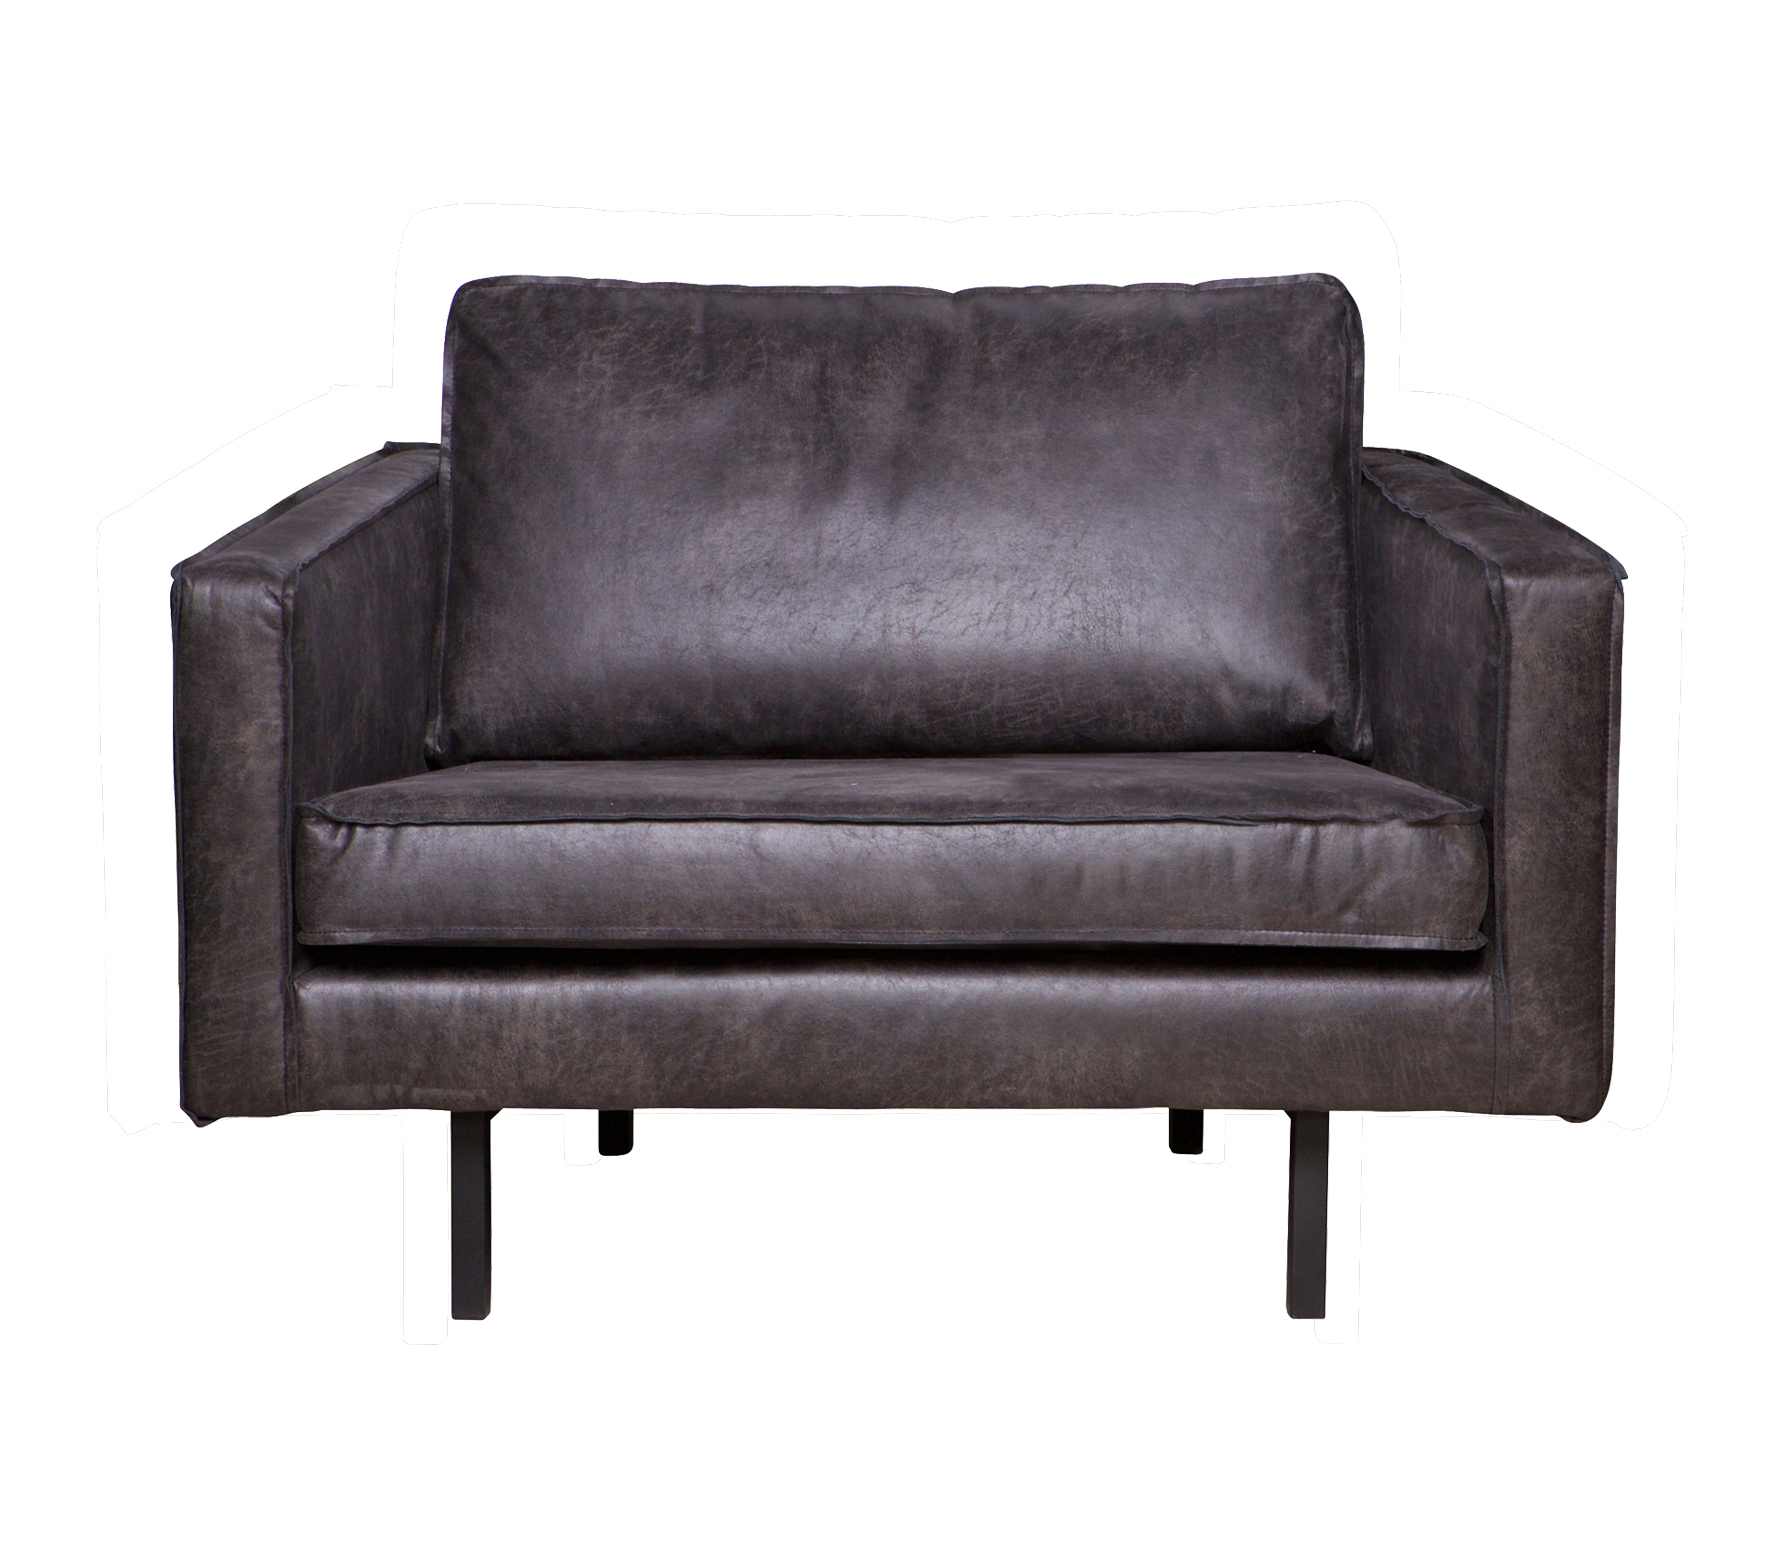 BePureHome Rodeo loveseat 1,5-zits fauteuil zwart recycle leer Zwart